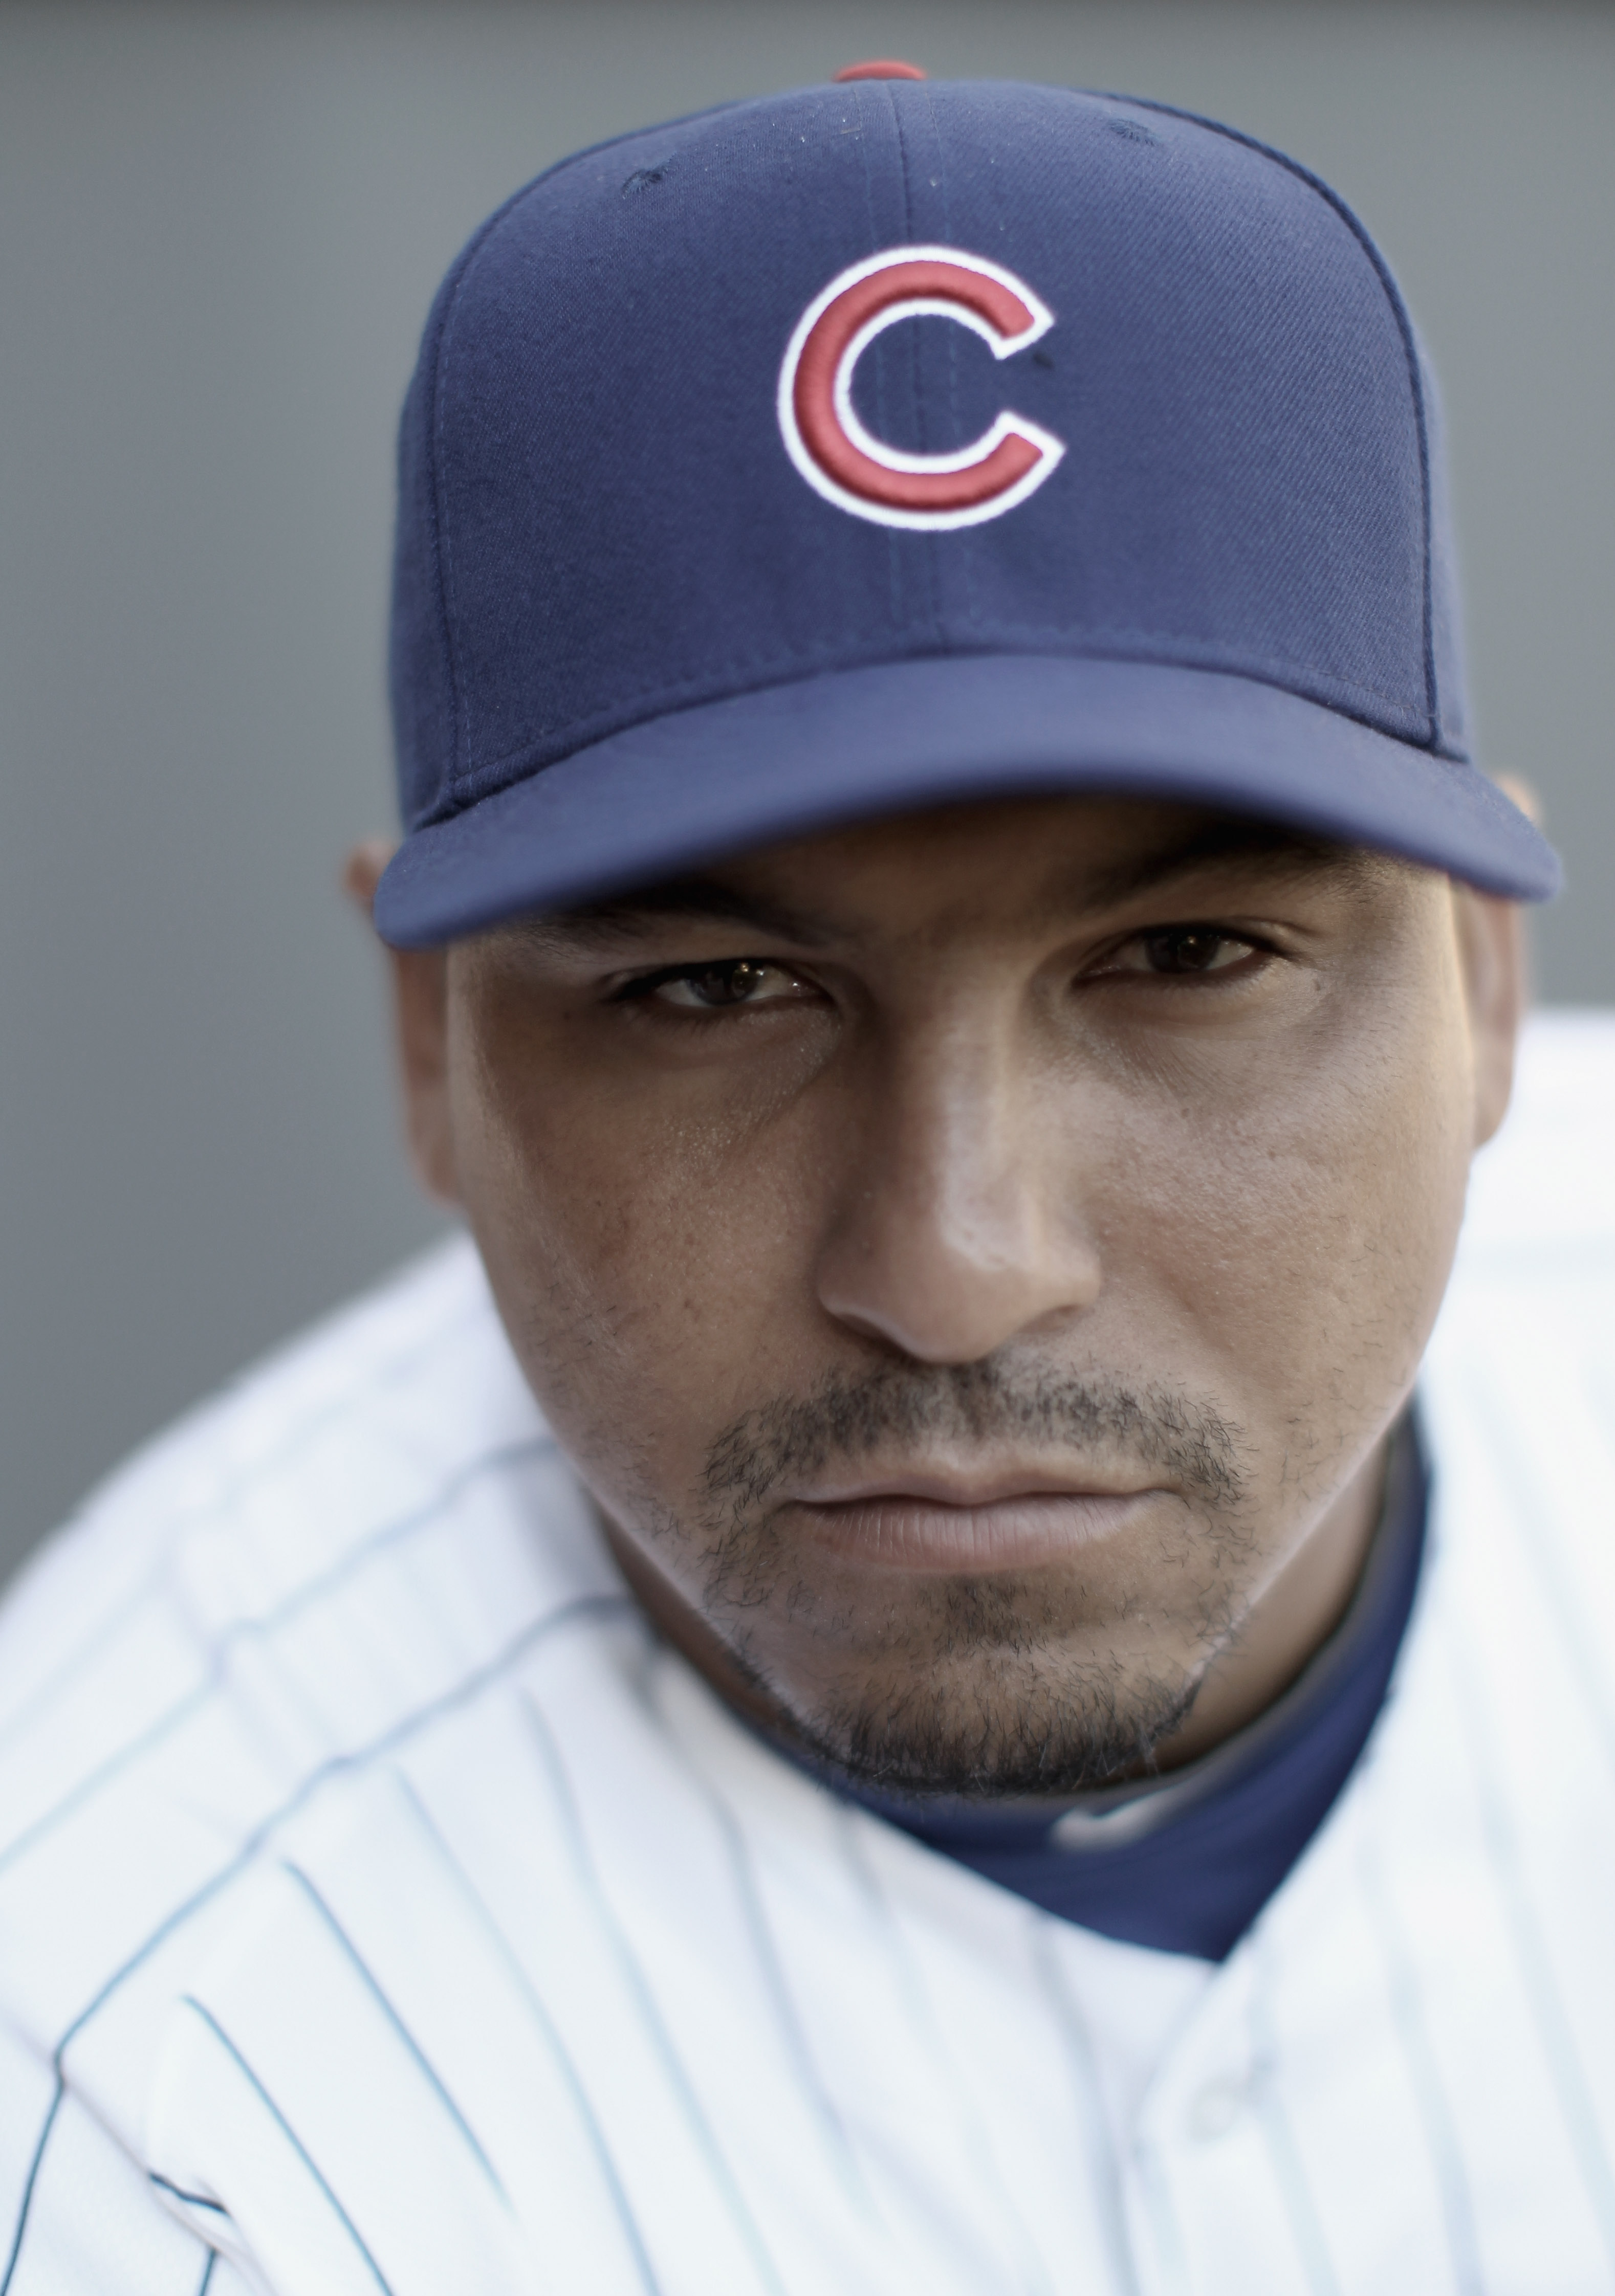 MESA, AZ - FEBRUARY 22:  (EDITORS NOTE : THIS IMAGE HAS BEEN DIGITALLY DESATURATED.)  Carlos Zambrano #38 of the Chicago Cubs poses for a portrait during media photo day at Finch Park on February 22, 2011 in Mesa, Arizona.  (Photo by Ezra Shaw/Getty Image